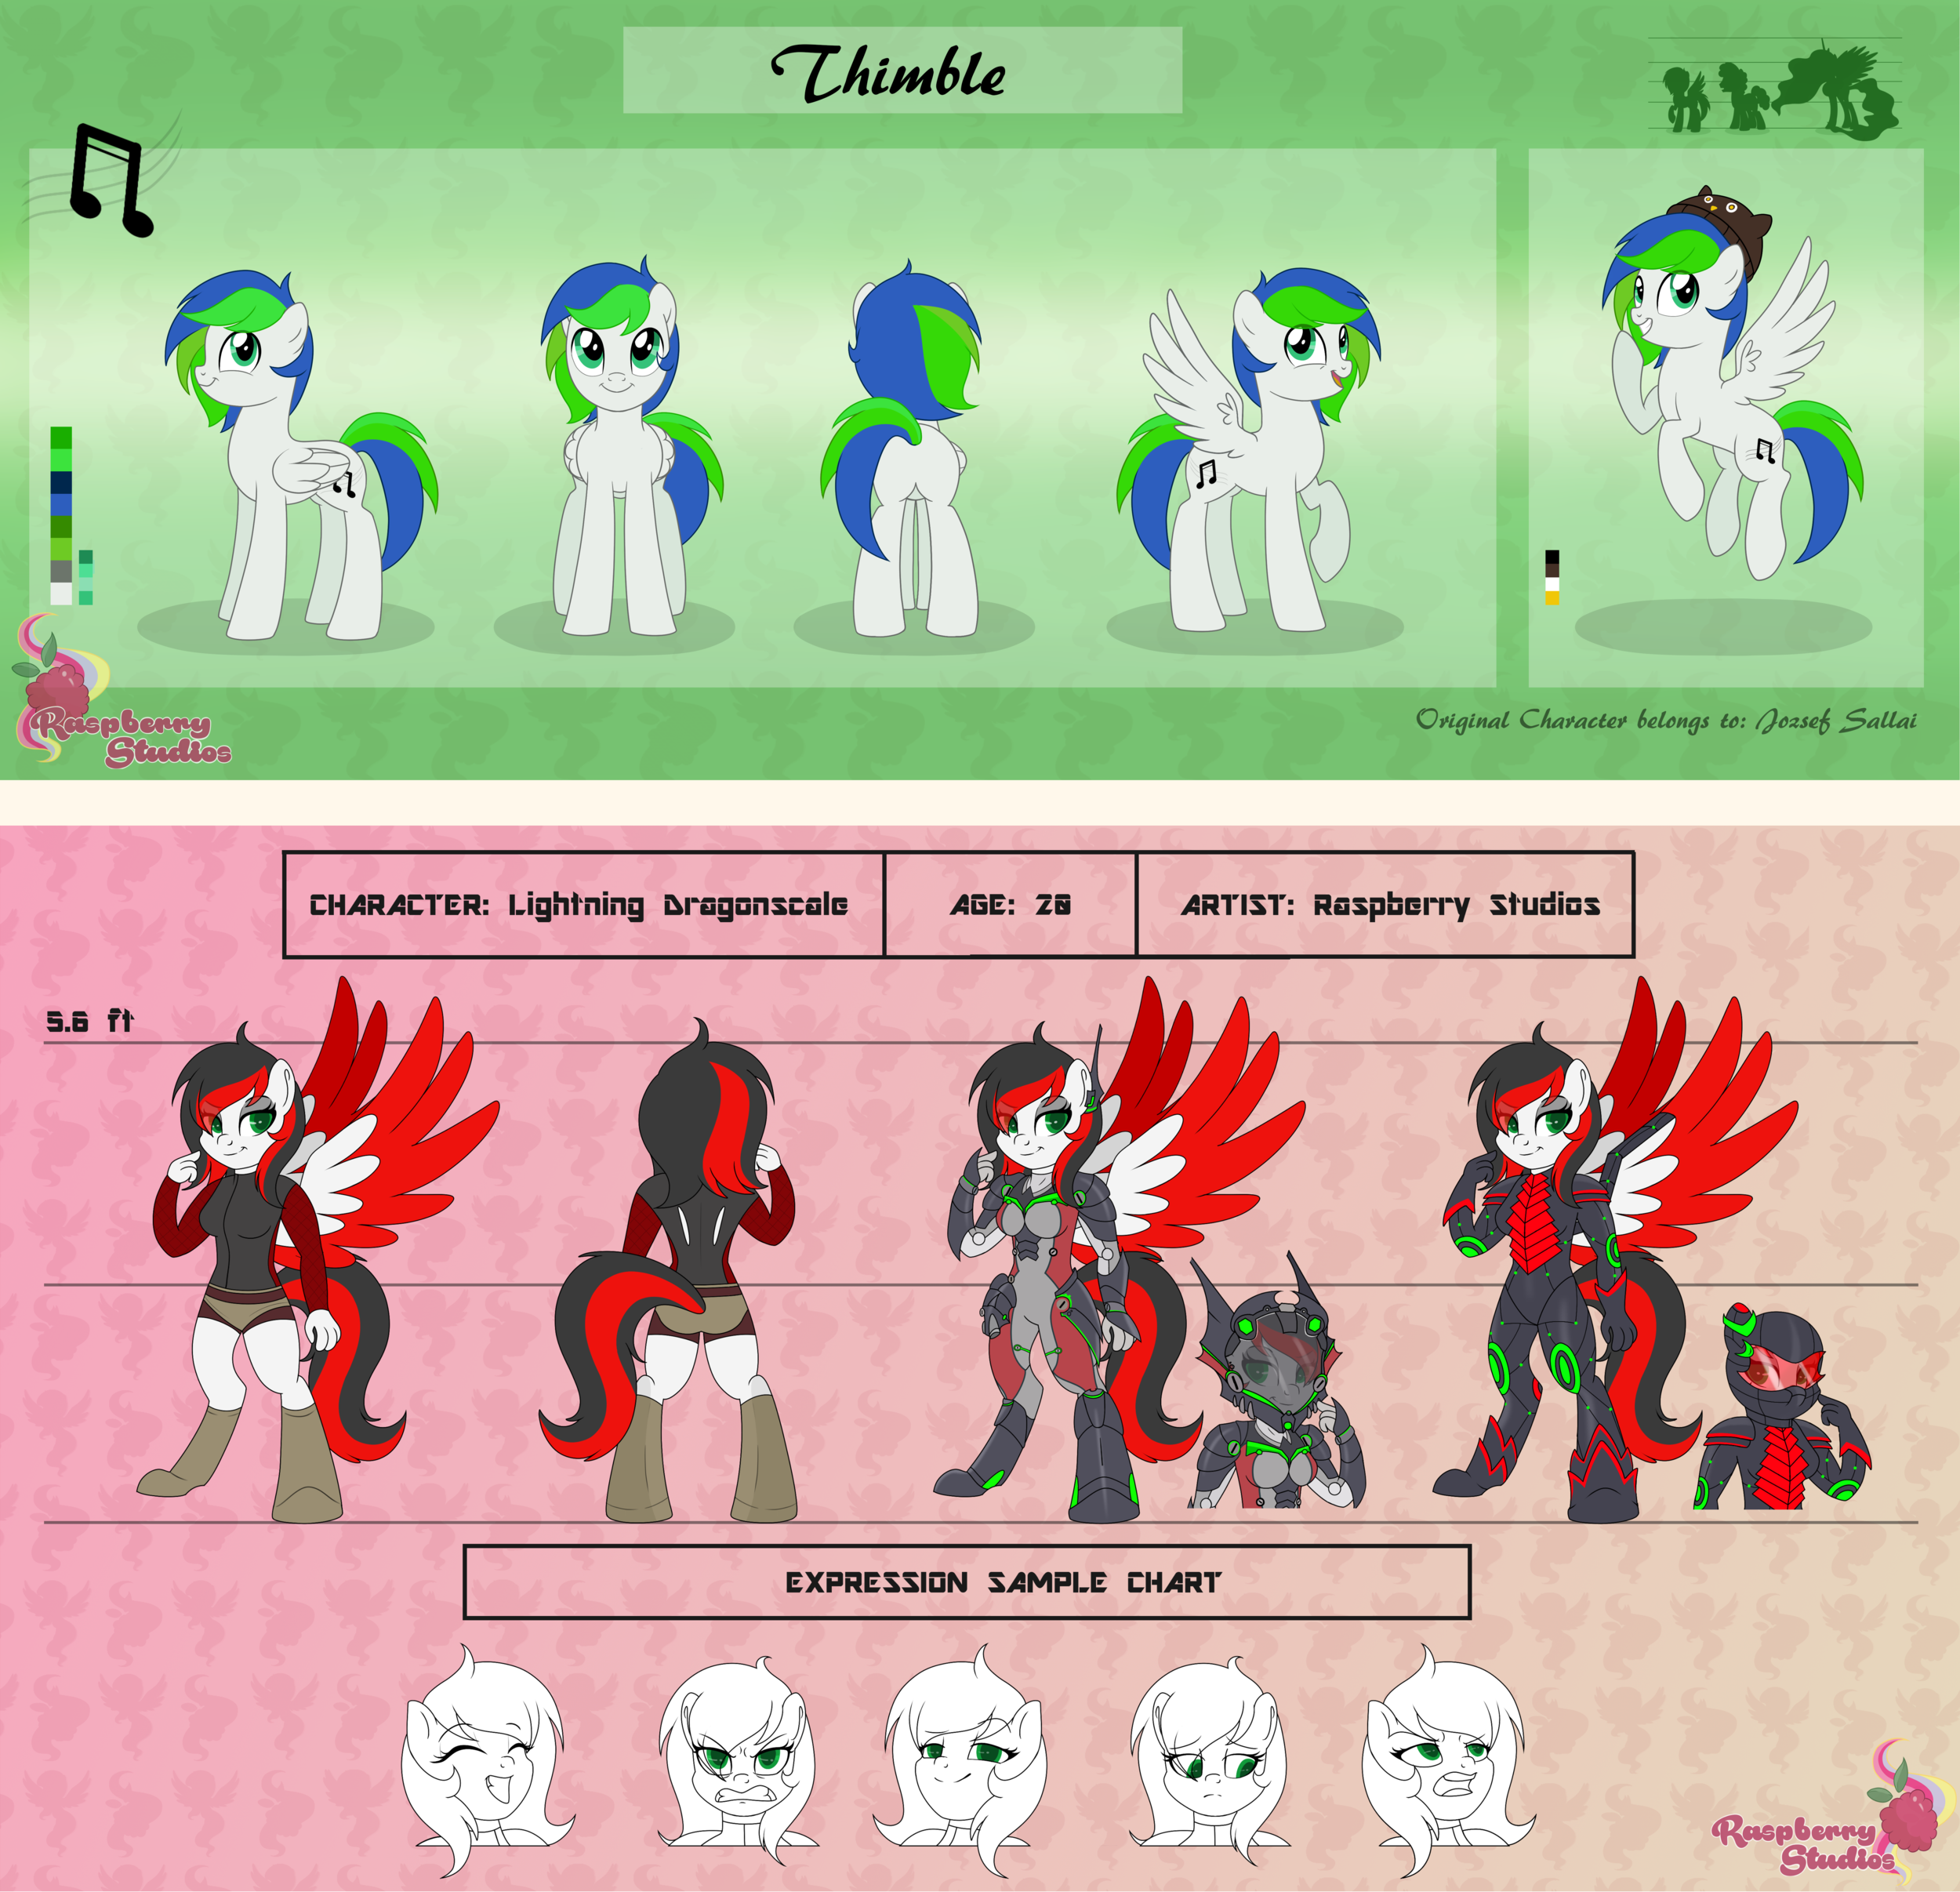 Large Reference Sheet - Pony/Feral: $40 USD - Additional Angle/Outfit $5Pony/Feral reference sheets show your original character from four different angles (front, back, side, and 3/4) and one extra (your choice of pose/outfit).________________________________________________Anthro: $60 USD - Additional Angle/Outfit $10Anthro reference sheets come with a front and back pose of your character's main outfit plus two extra (can show character markings or other outfits). Comes with up to five expressions.________________________________________________Please note there is an extra charge for any redesign work I am asked to do on characters or clothing. Price varies depending on the amount of work I am asked to do.